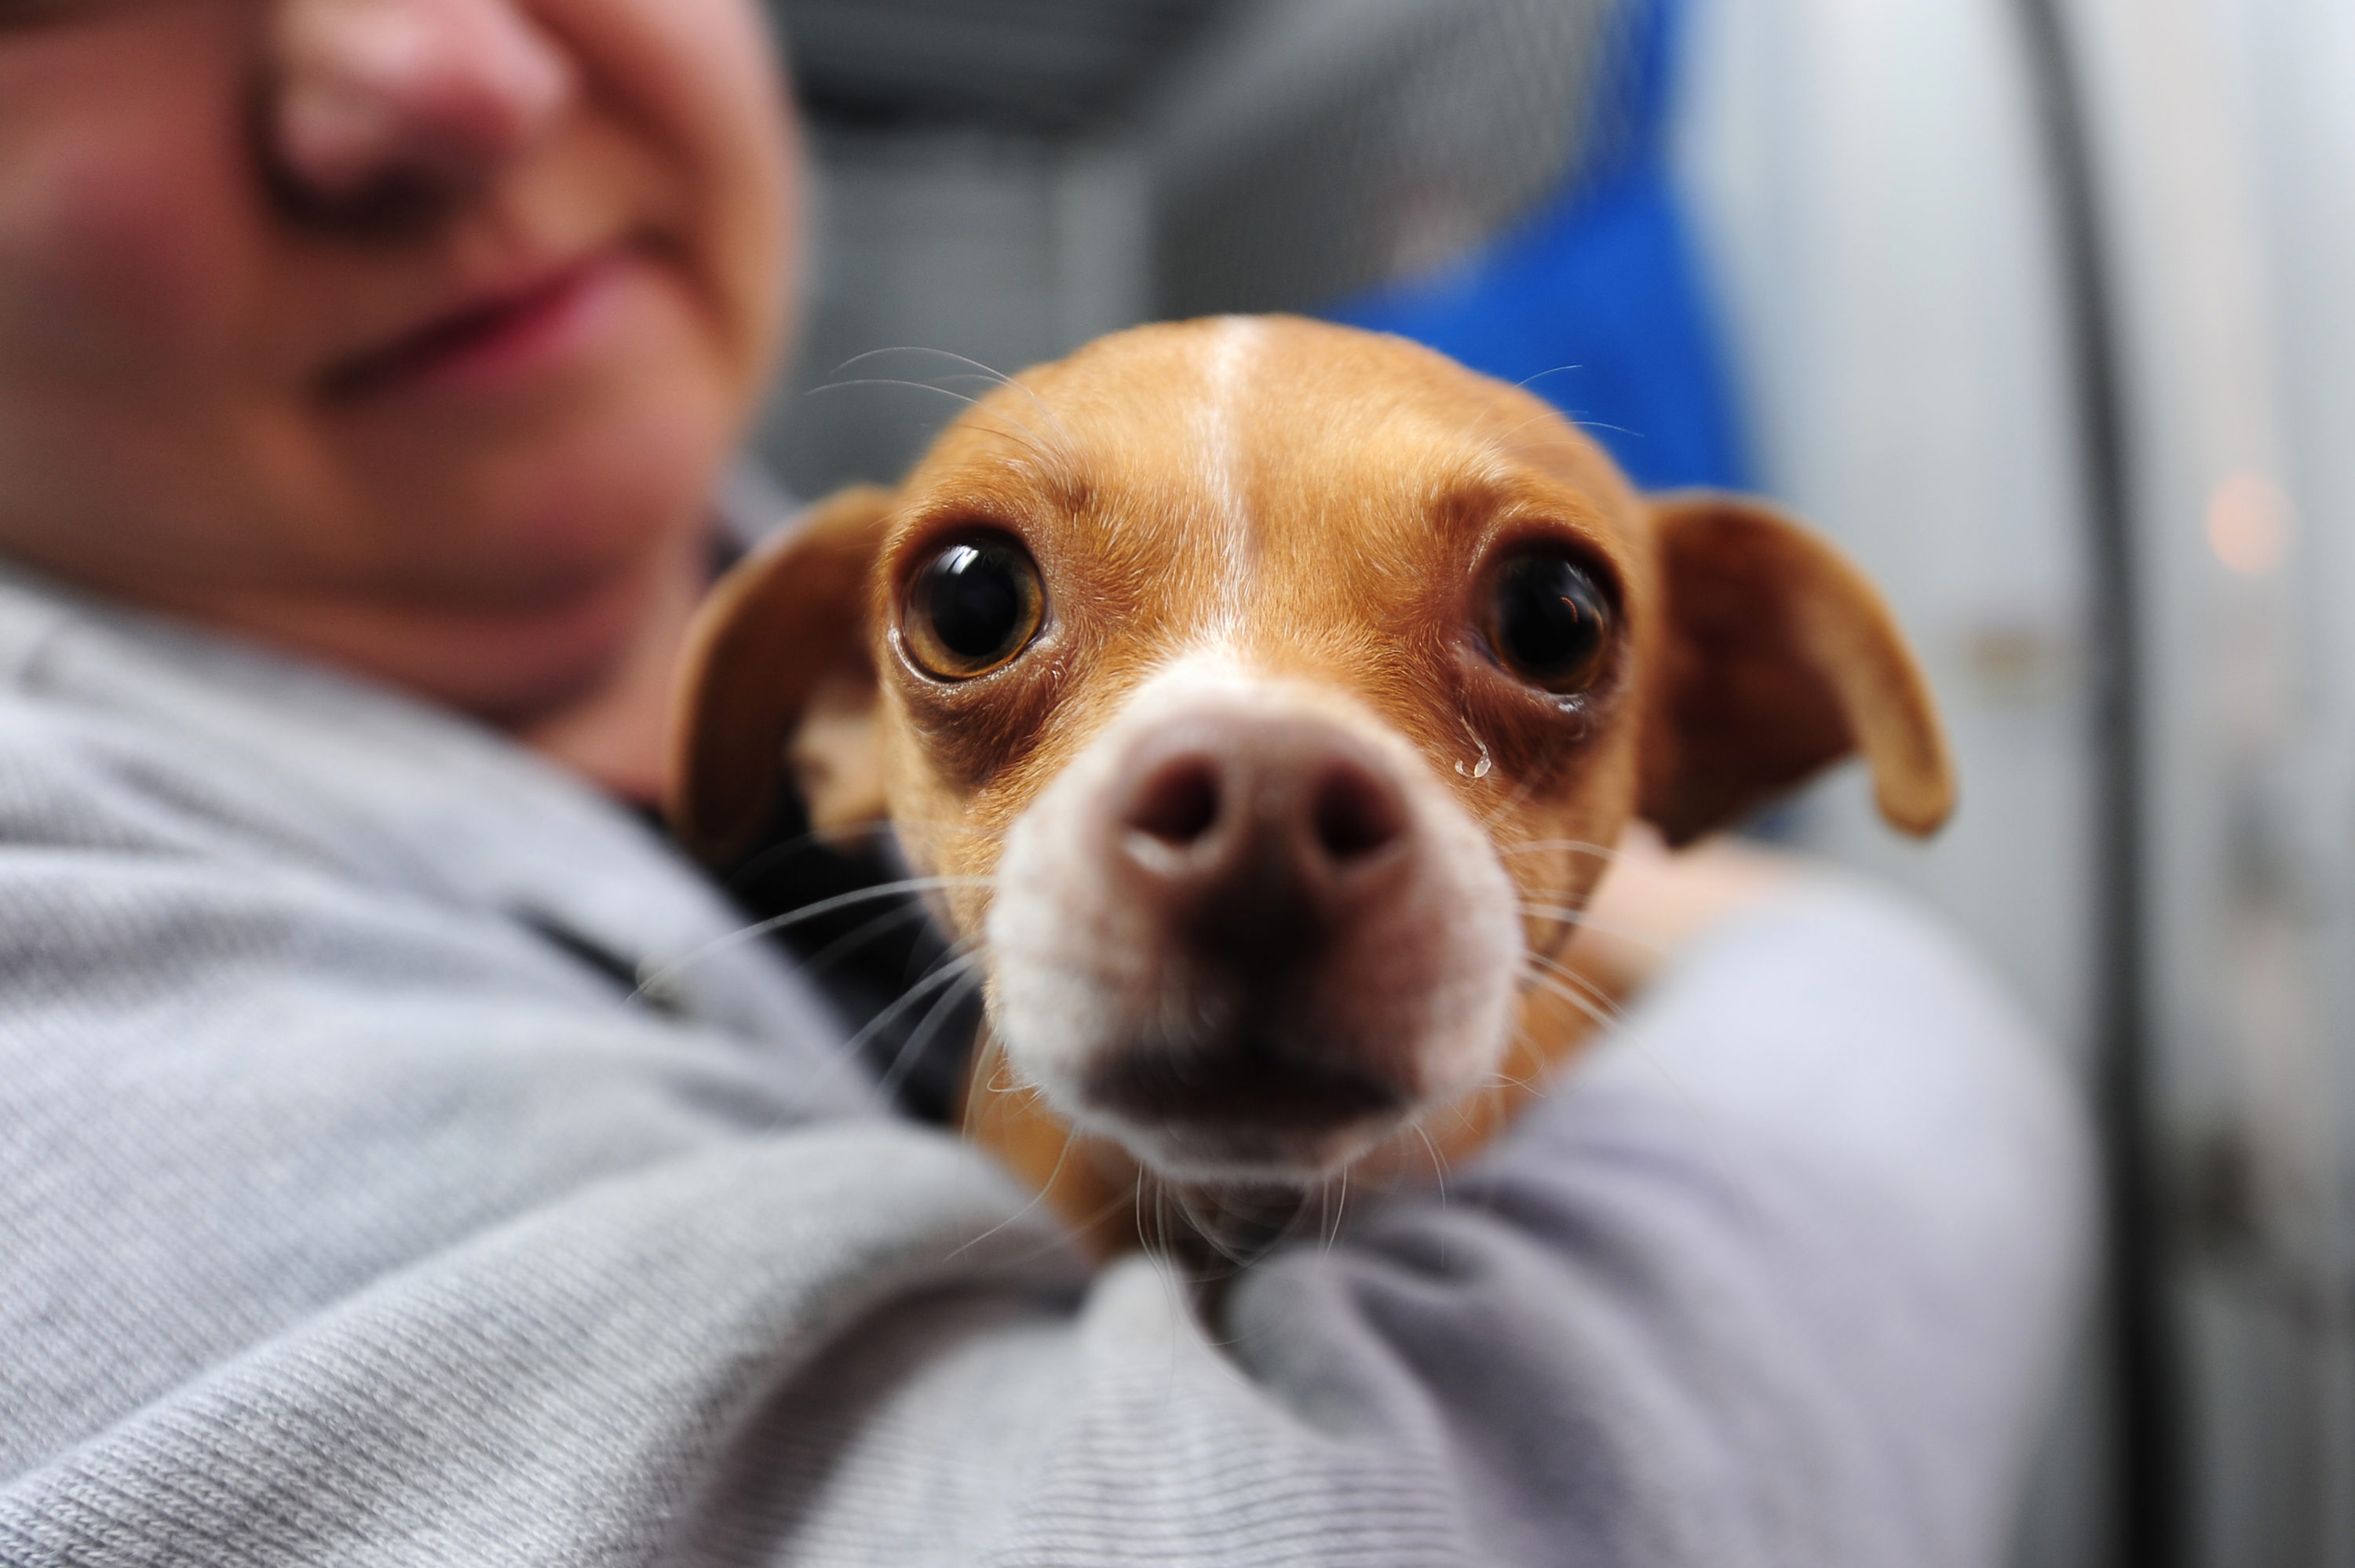 Animal Rescues Report Uptick In Pet Adoptions Amid Coronavirus Pandemic